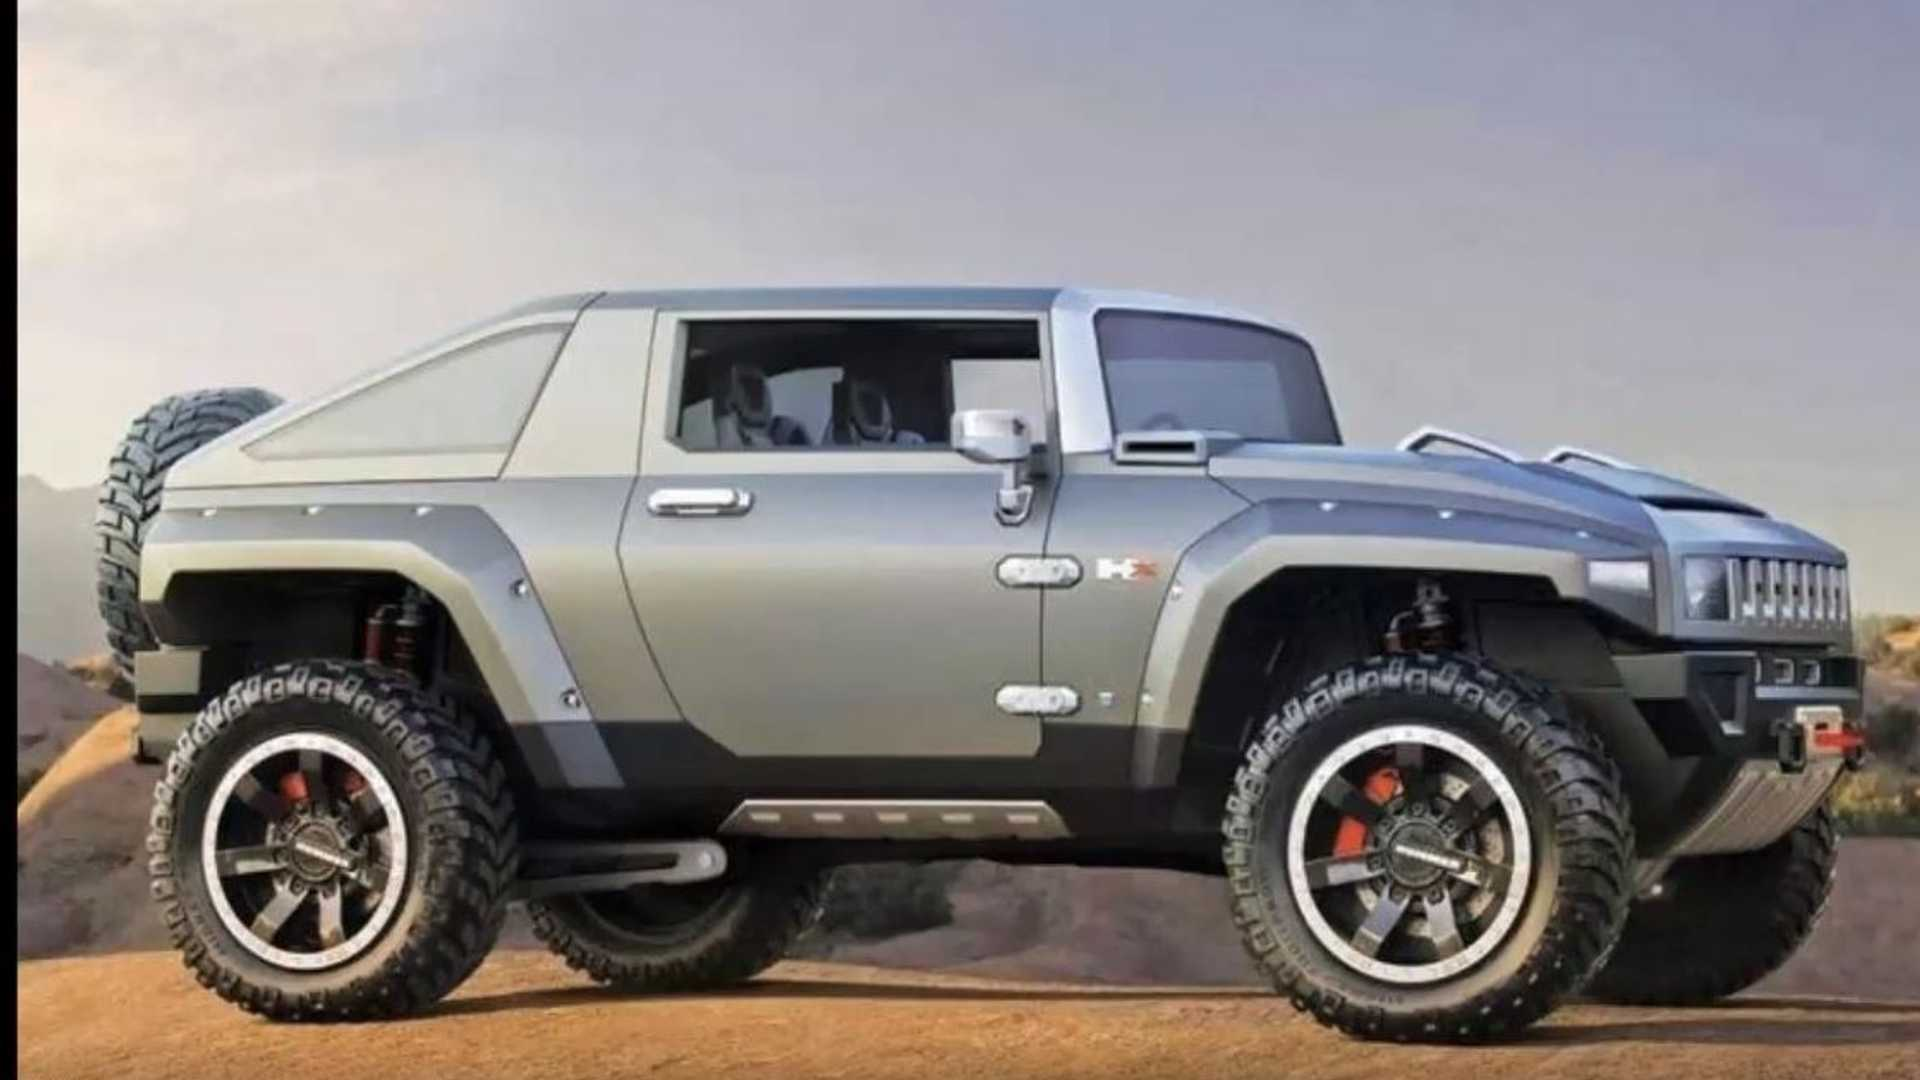 Hummer HX Comes Back To Life As Rugged Electric Off-Road SUV